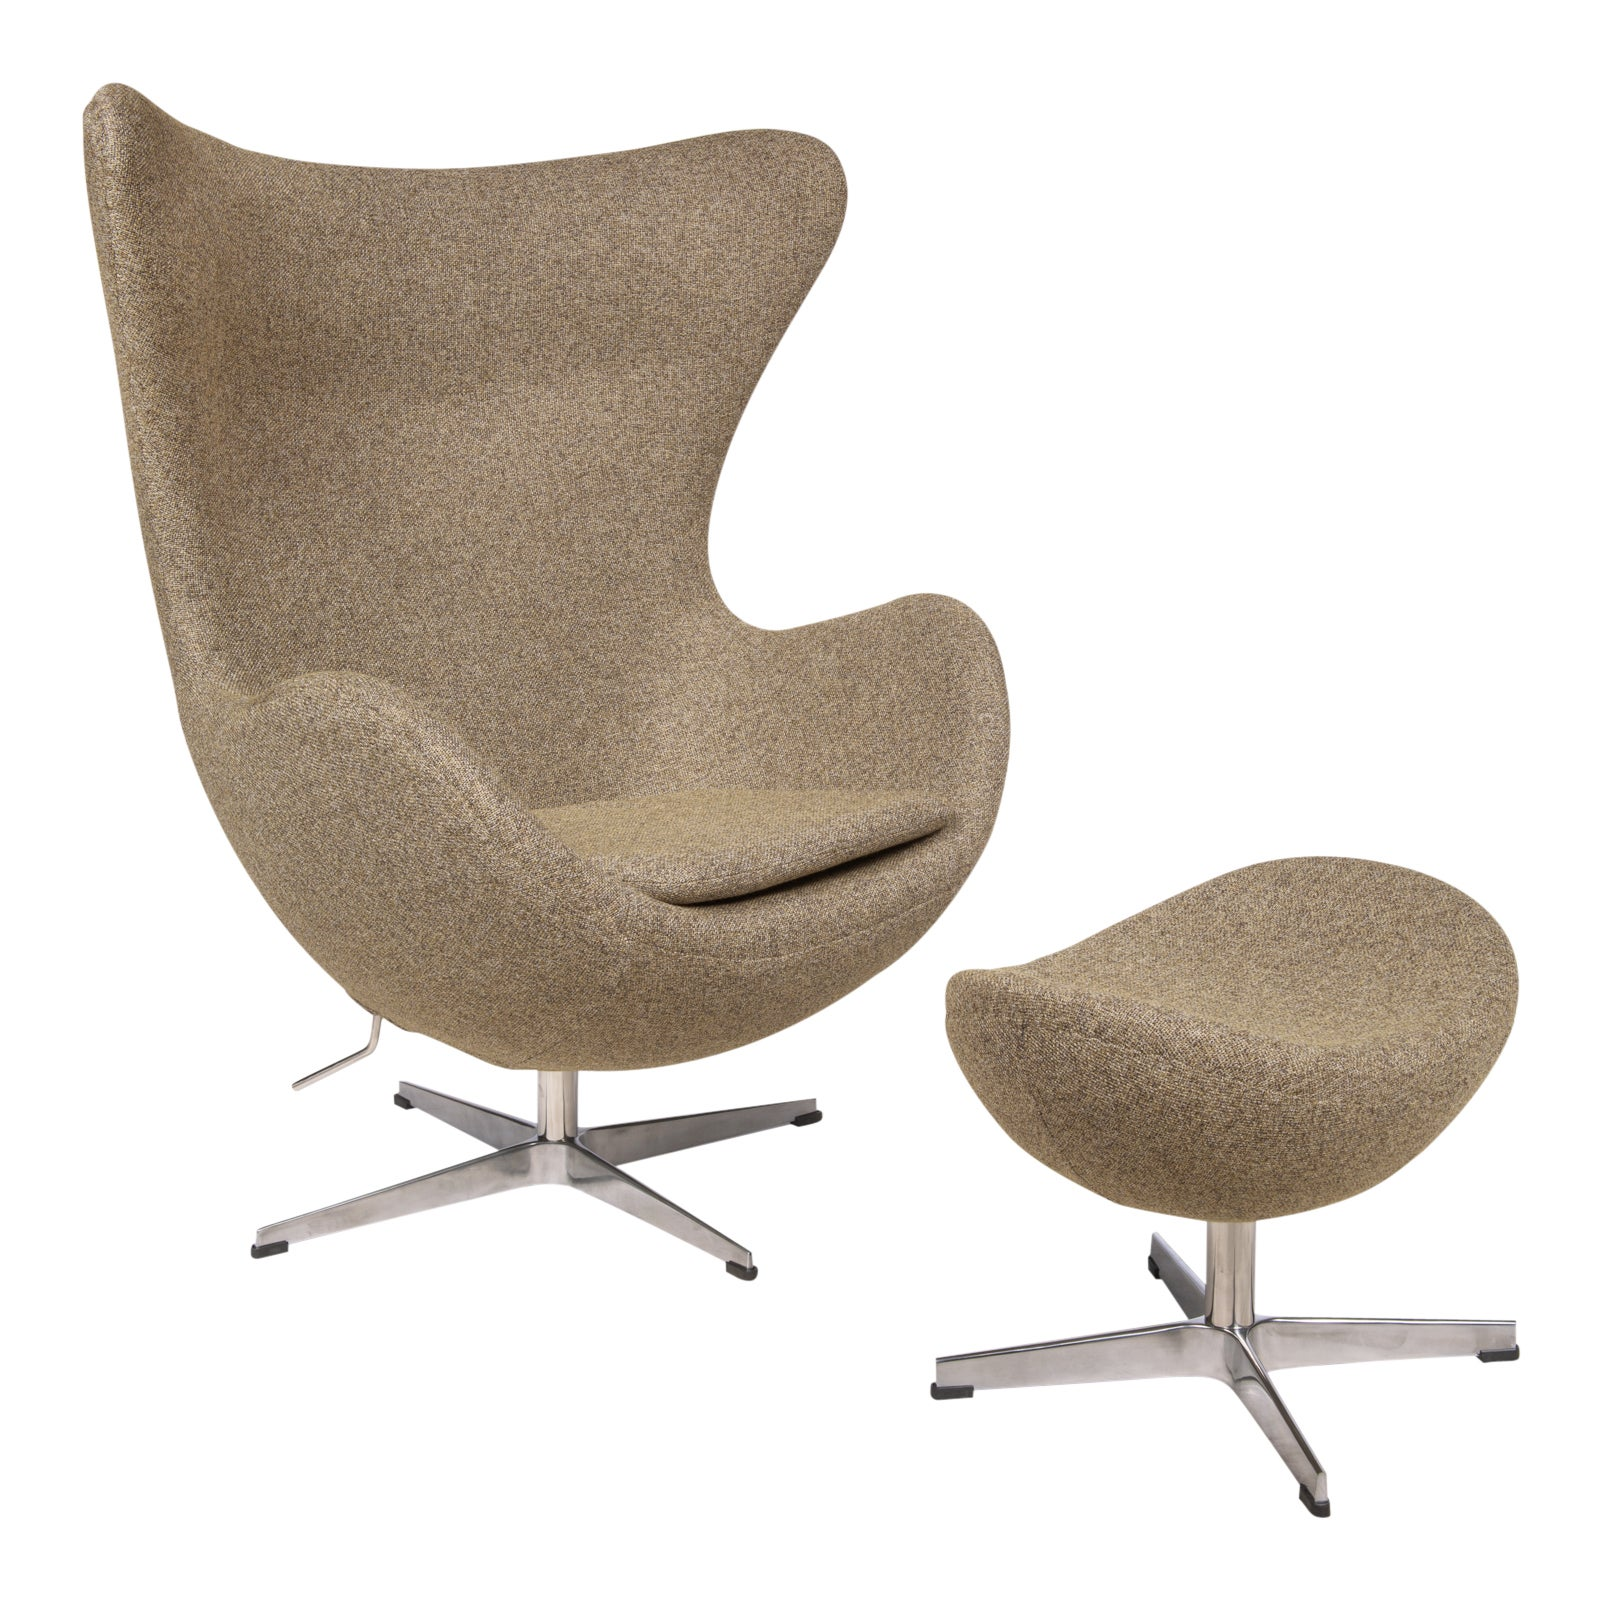 Concord LeisureMod Arne Jacobsen-Style Egg Chair and Otto...